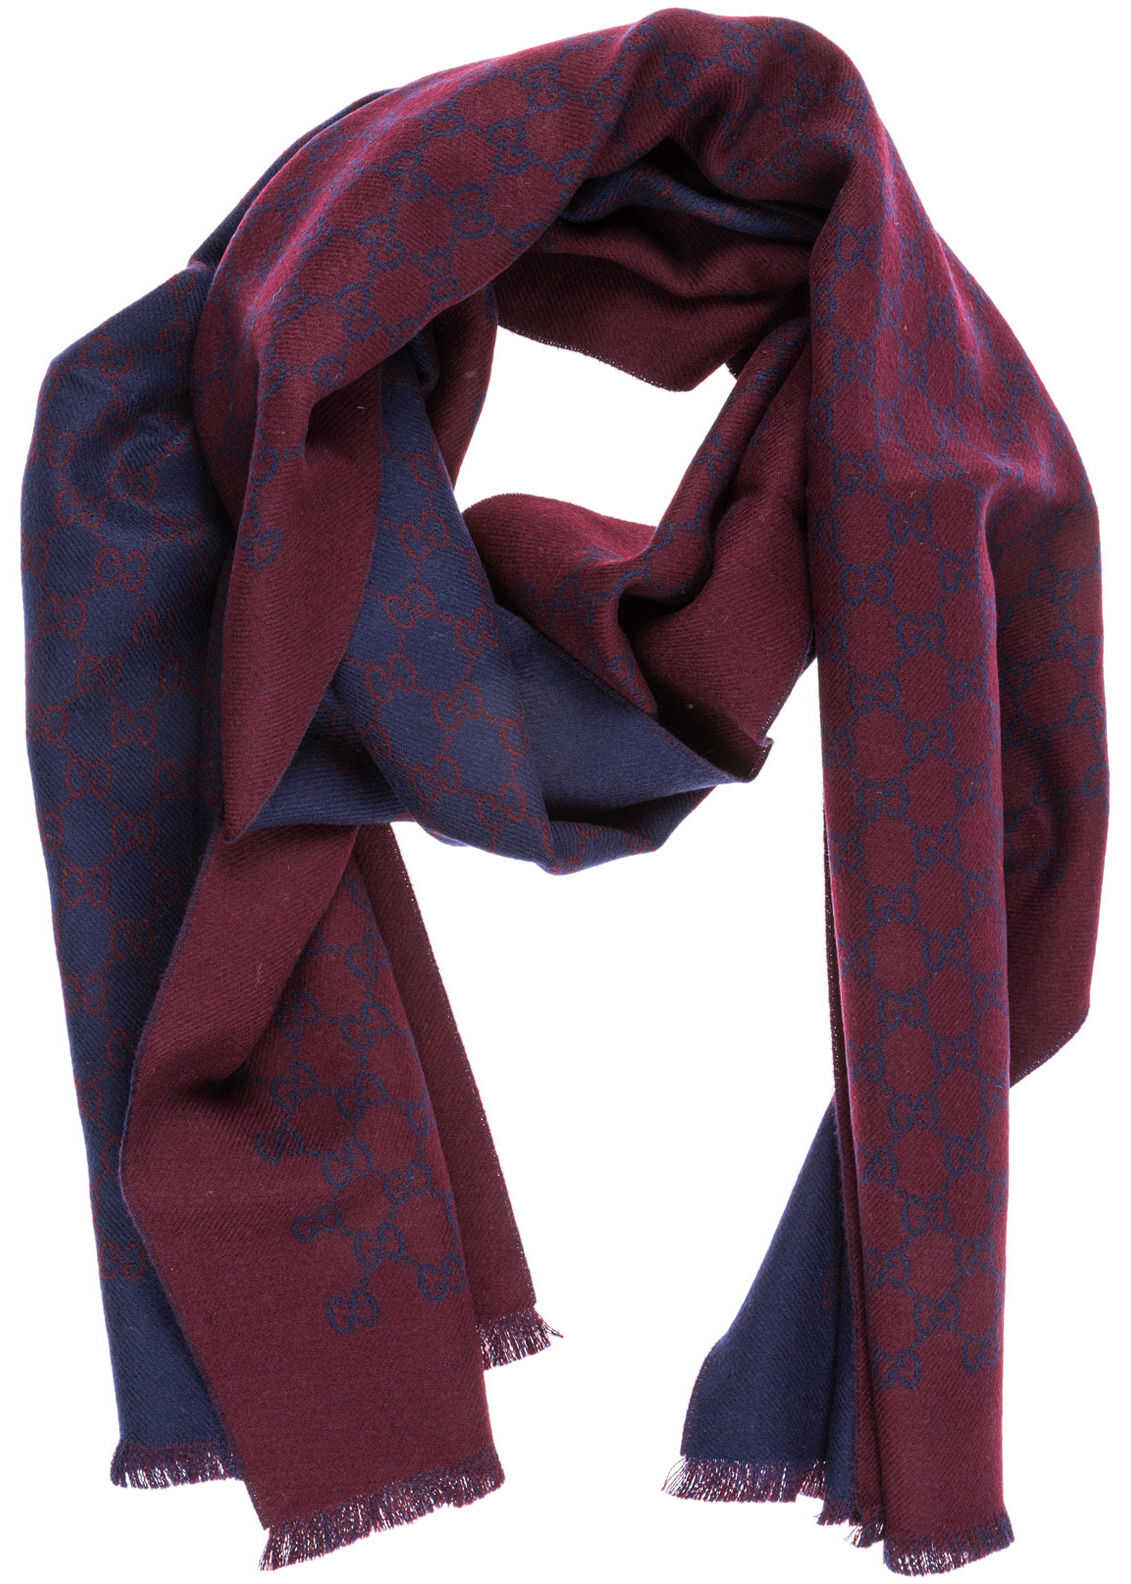 Gucci Wool Scarf Red